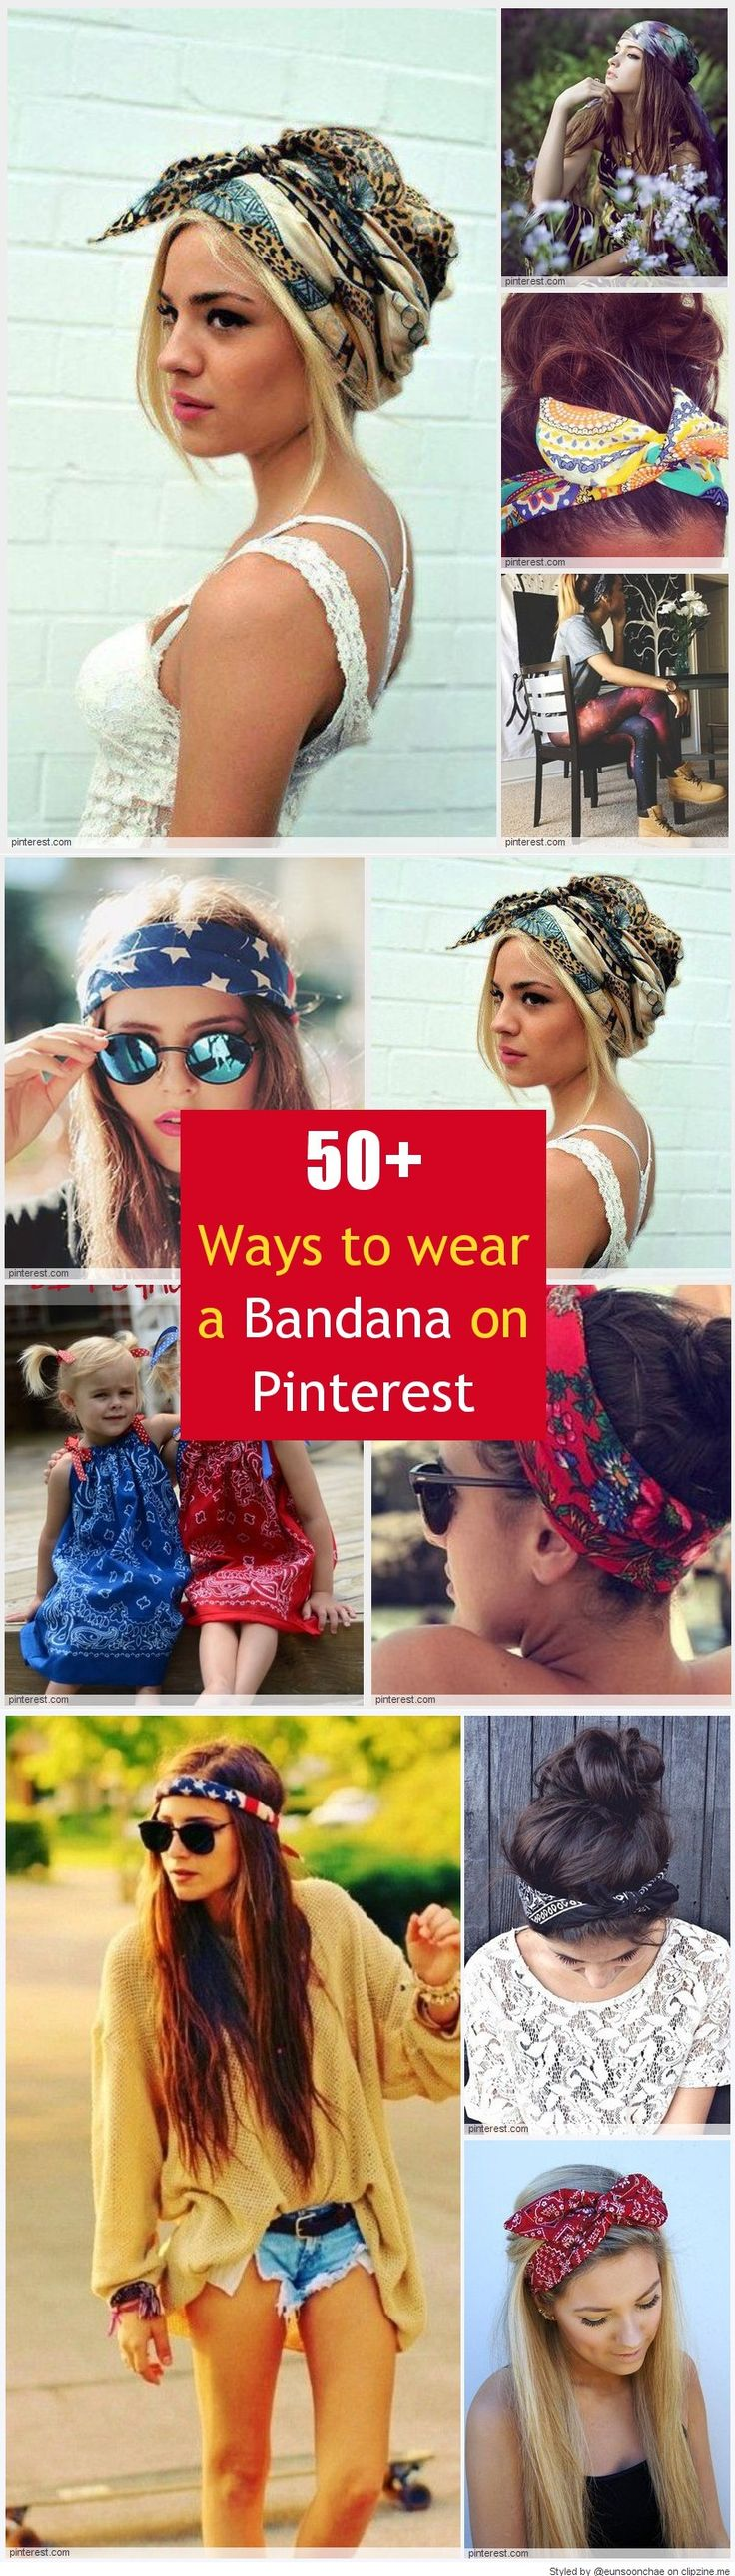 how to wear your hair up with a bandana